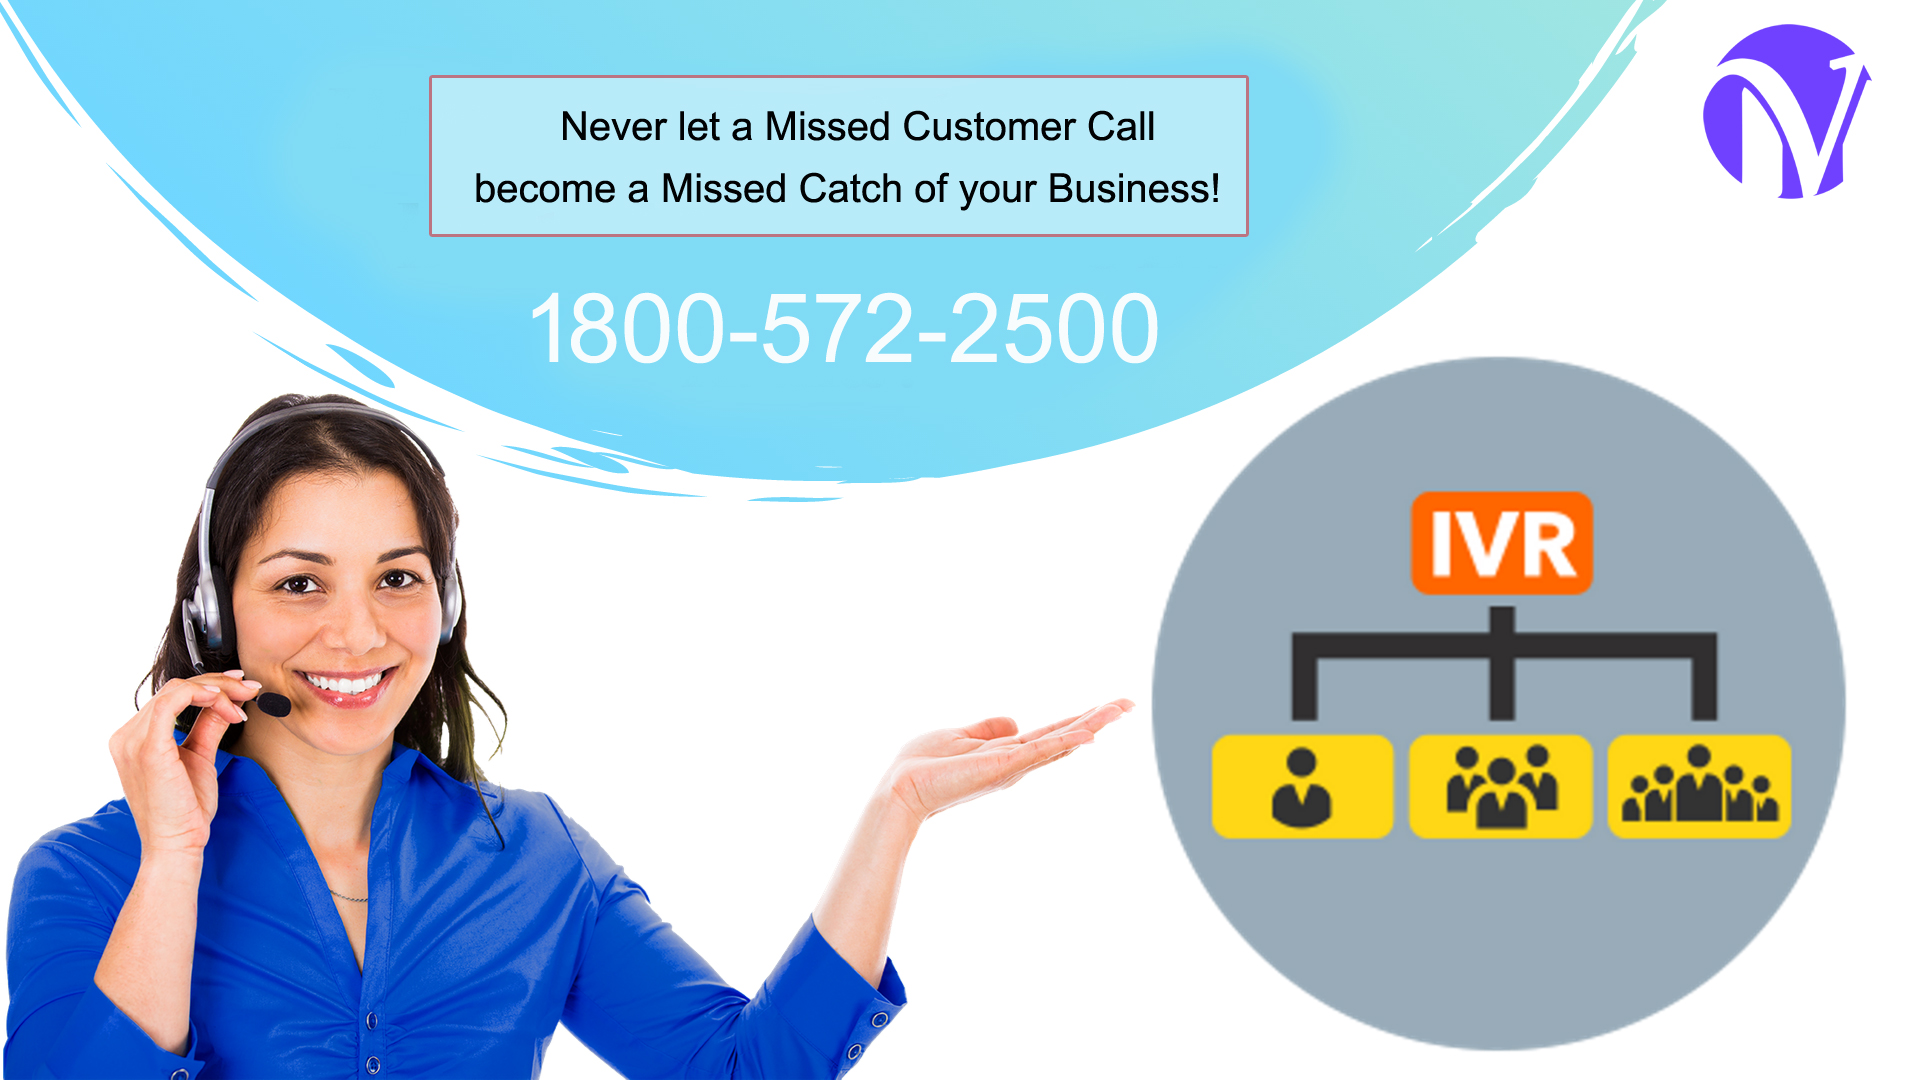 Never let a Missed customer call, become a Missed Catch of your business!